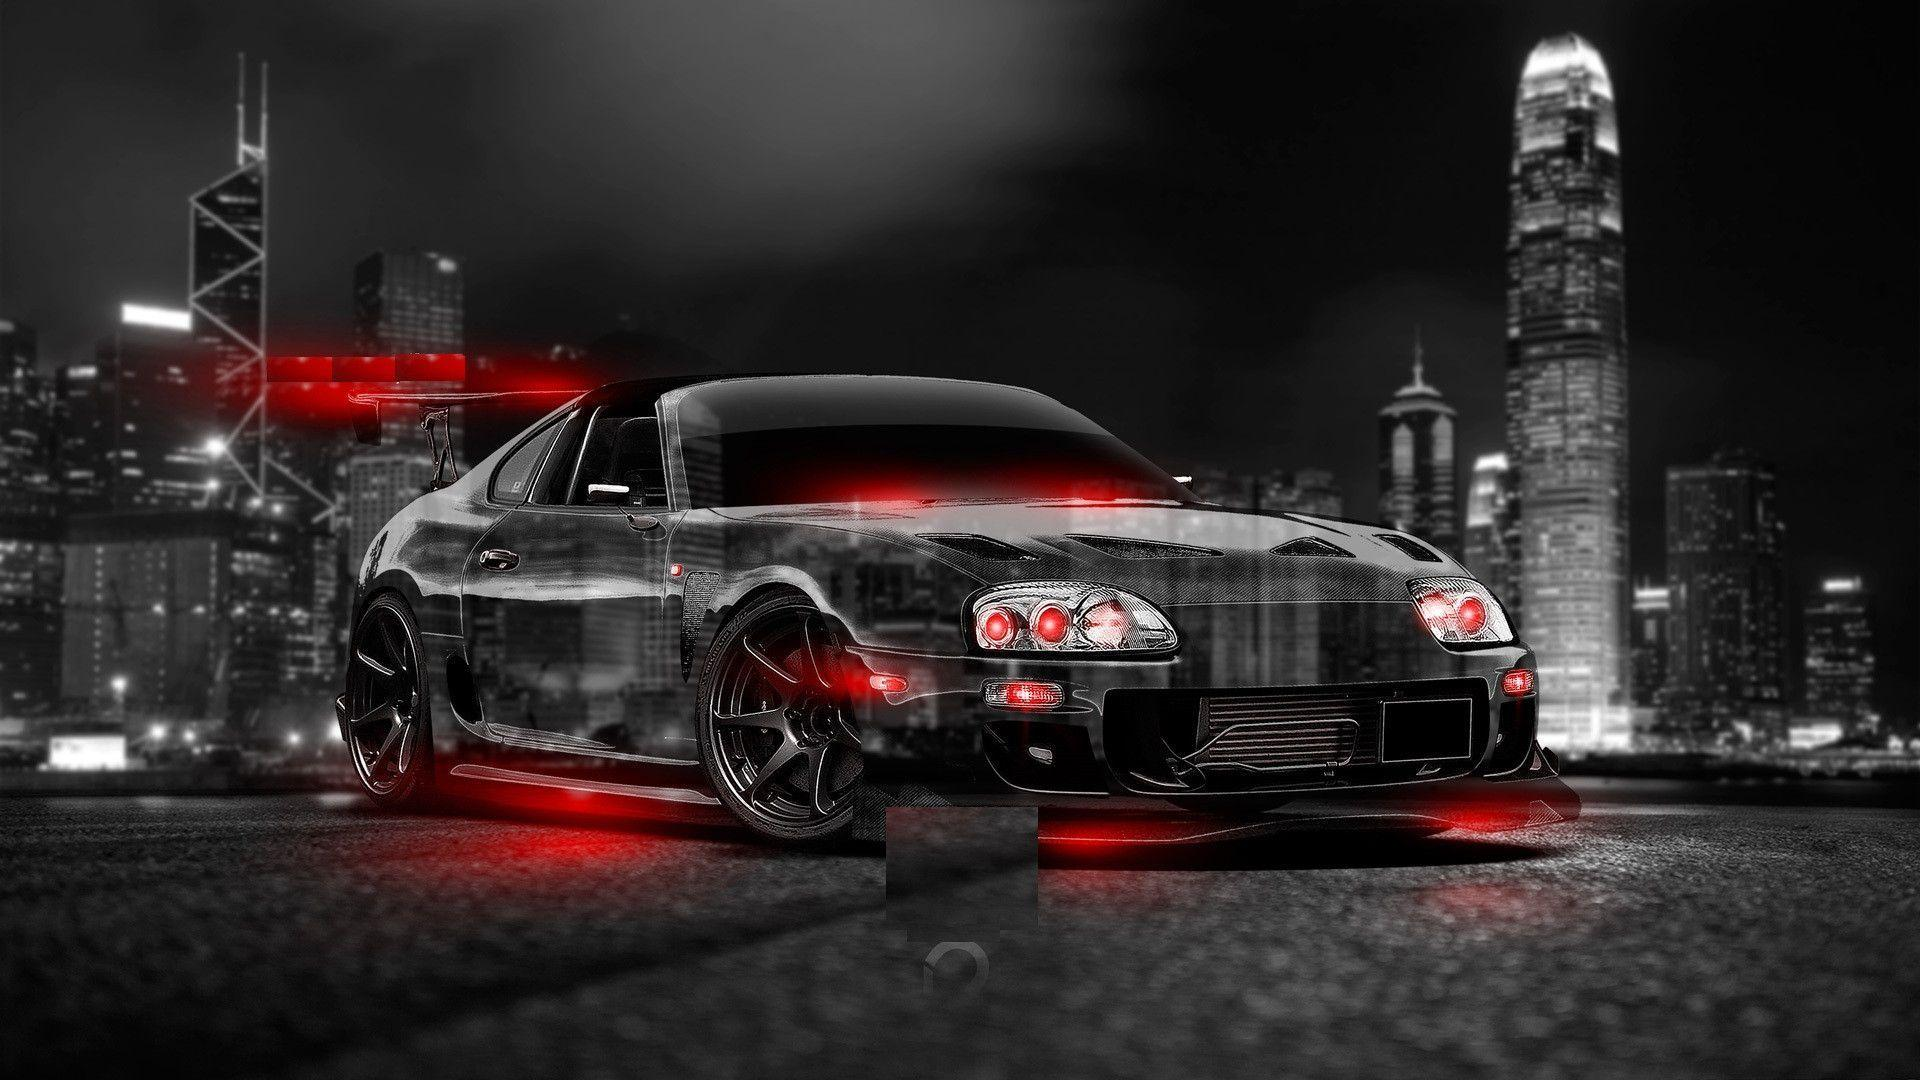 Abstract Black Toyota Supra Wallpapers Tumblr 2 Wallpapers